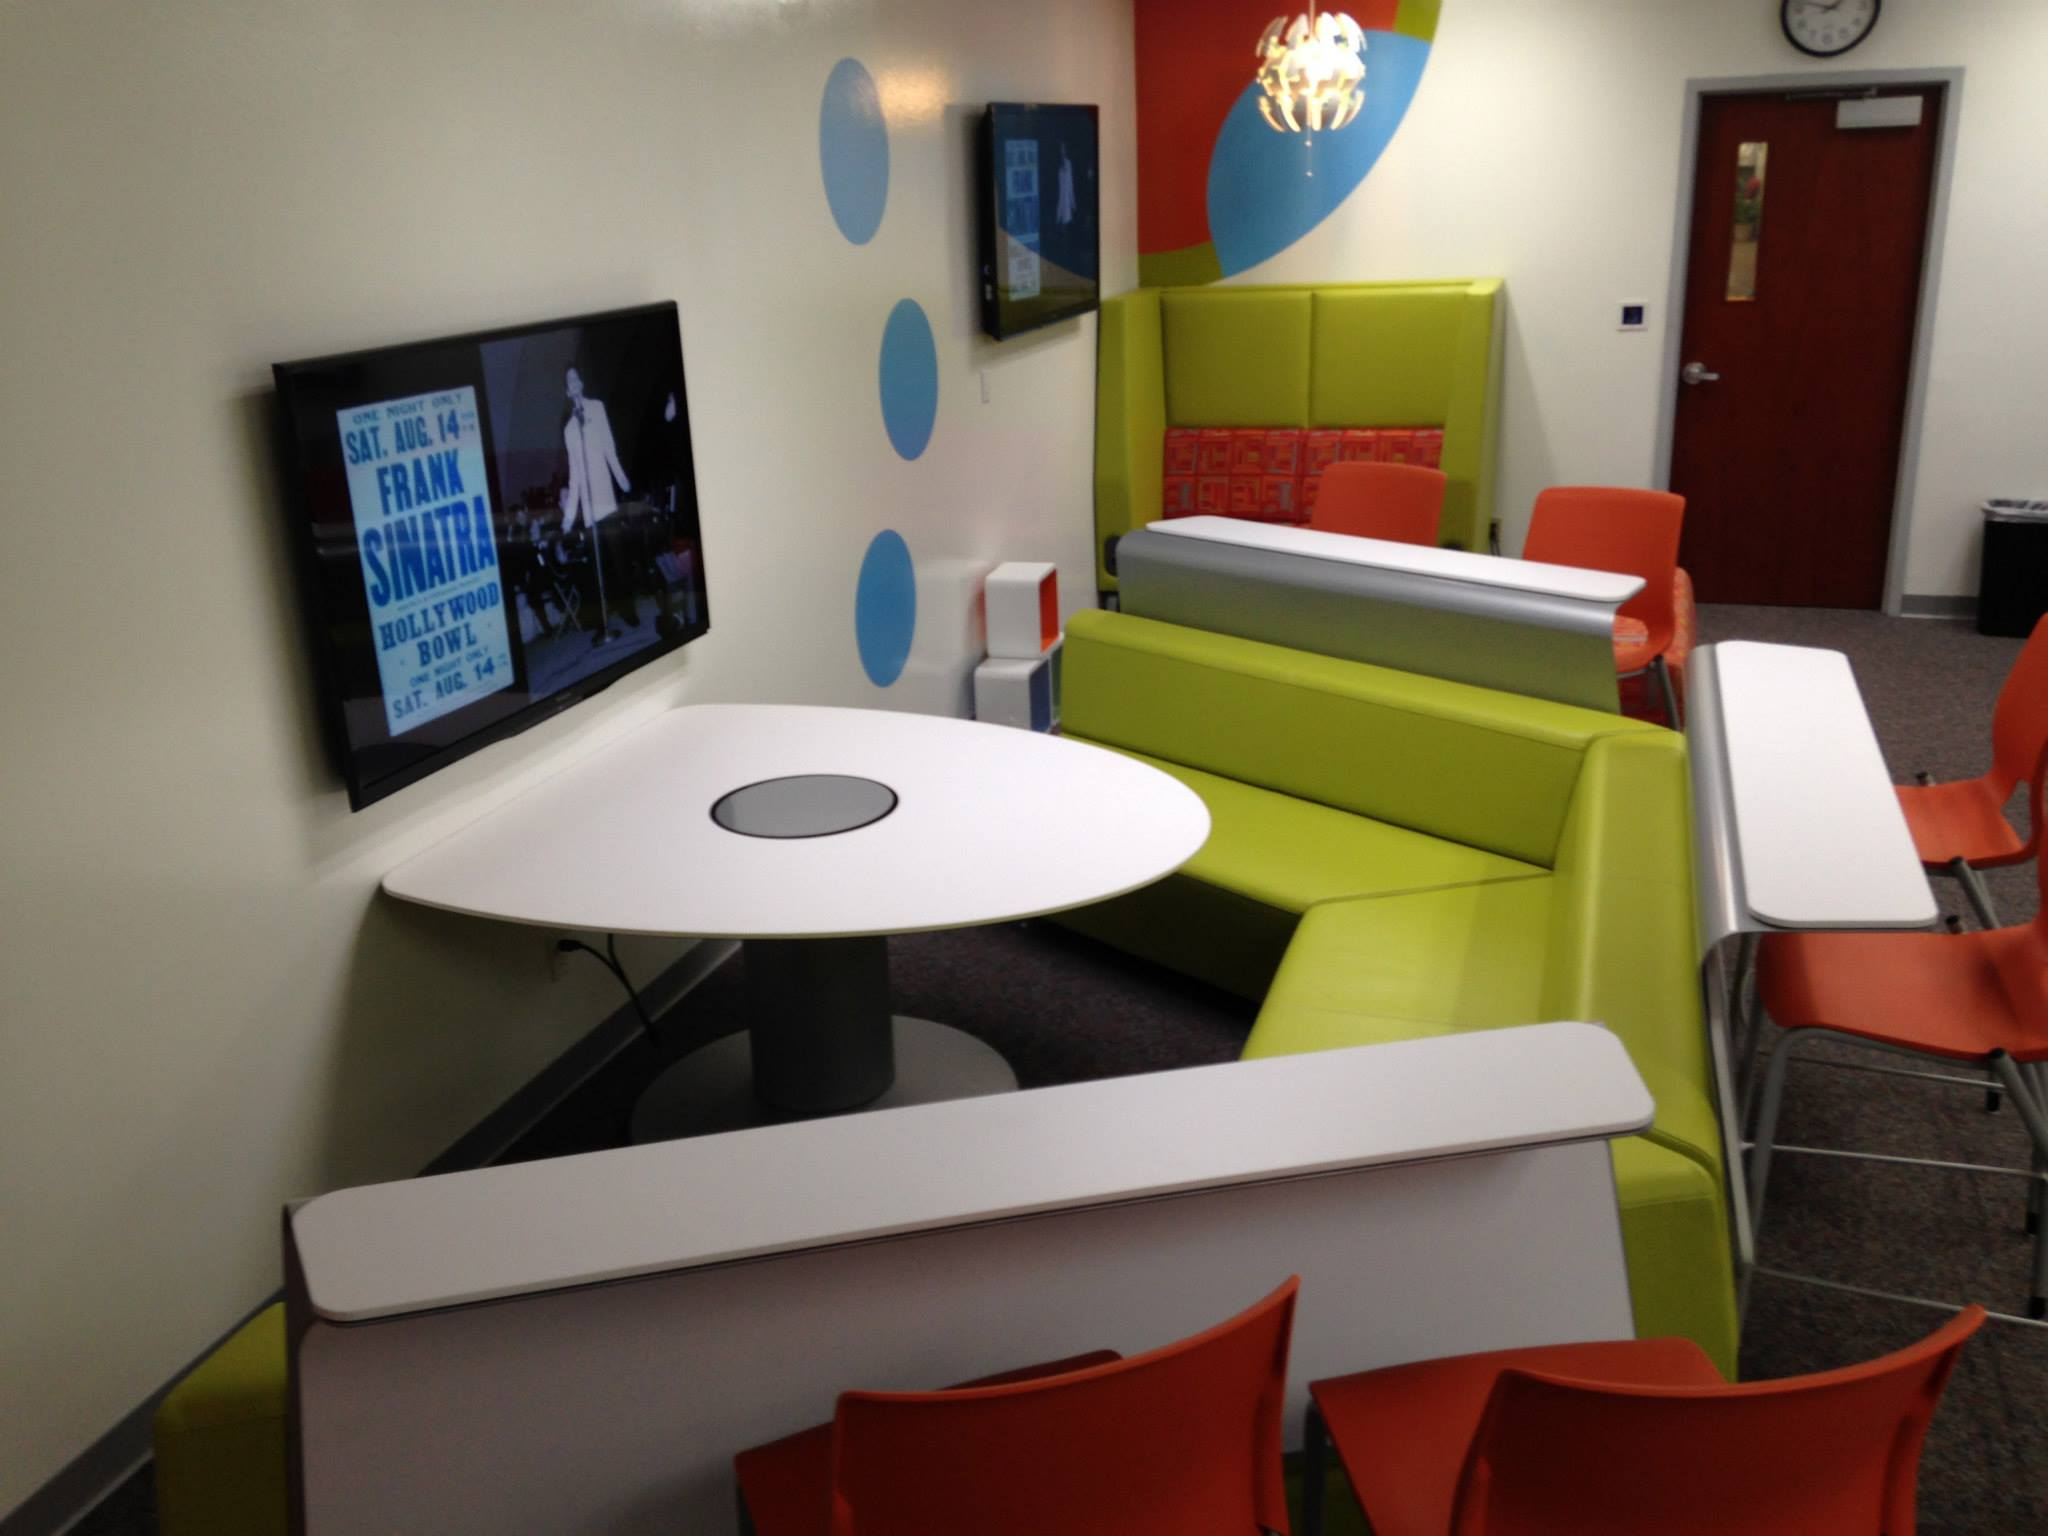 furniture classroom for 21st century learning of 8